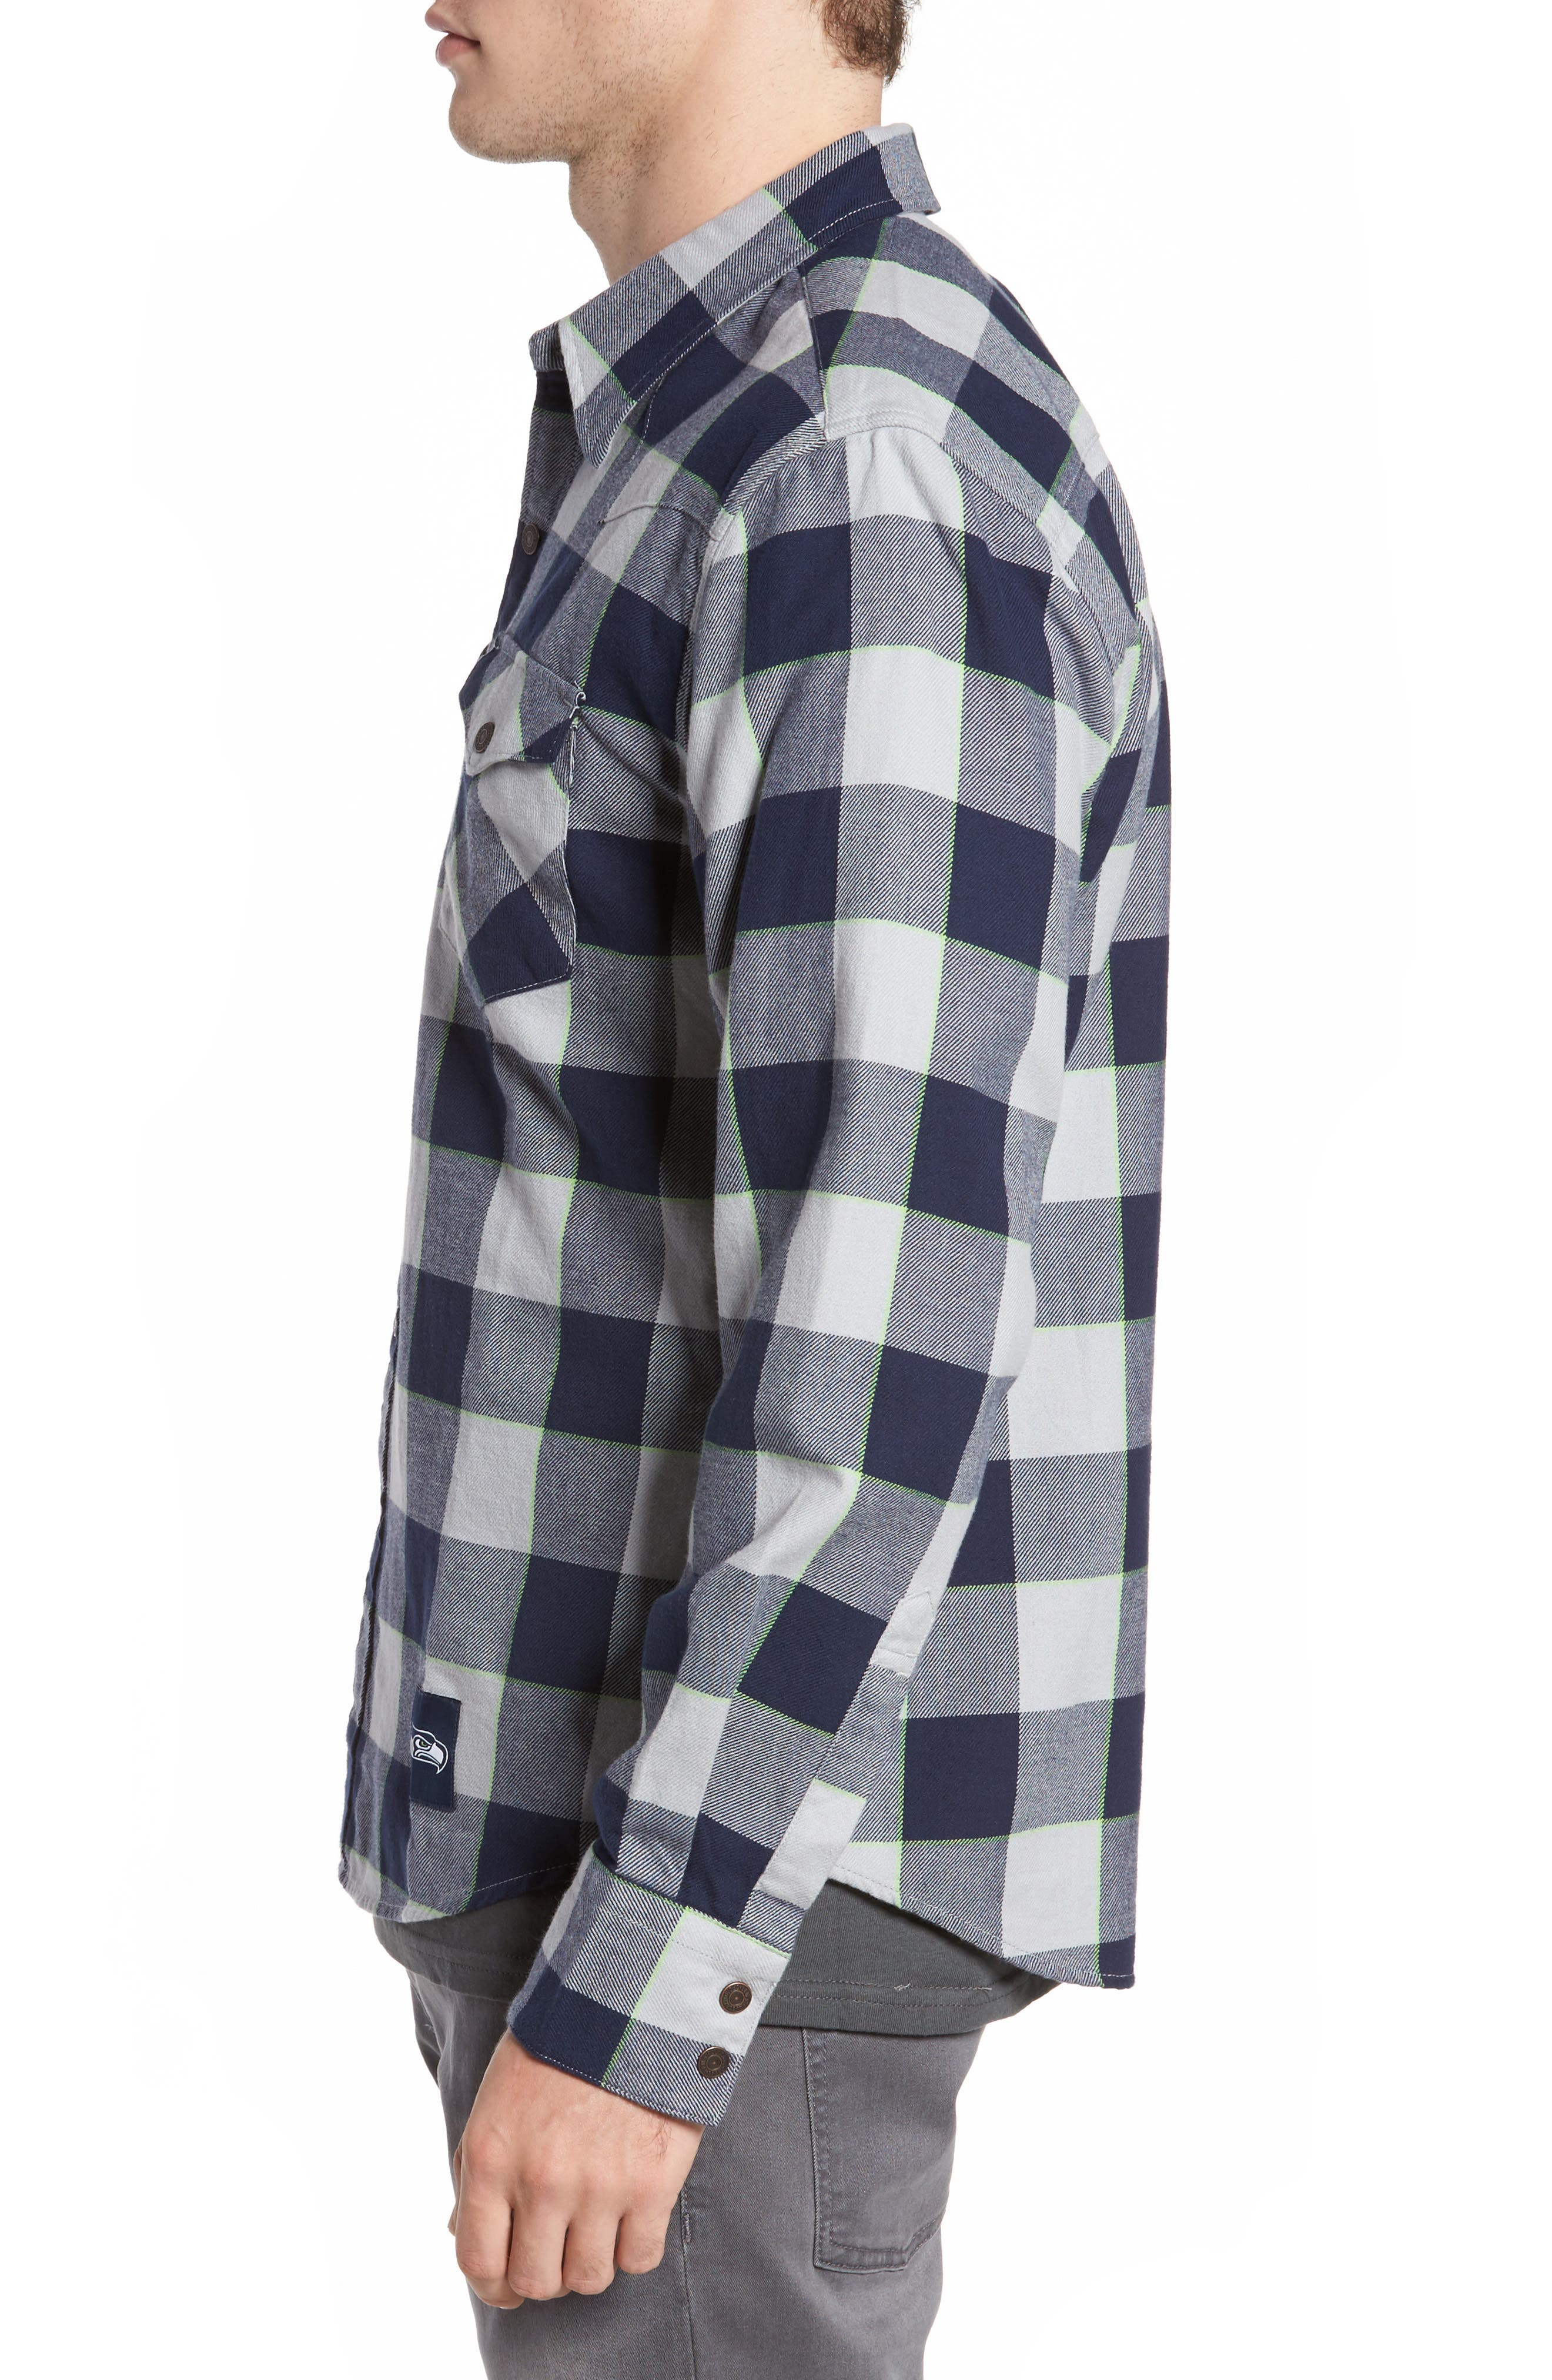 NFL Seahawks - Barstow Plaid Western Shirt,                             Alternate thumbnail 3, color,                             Blue Plaid